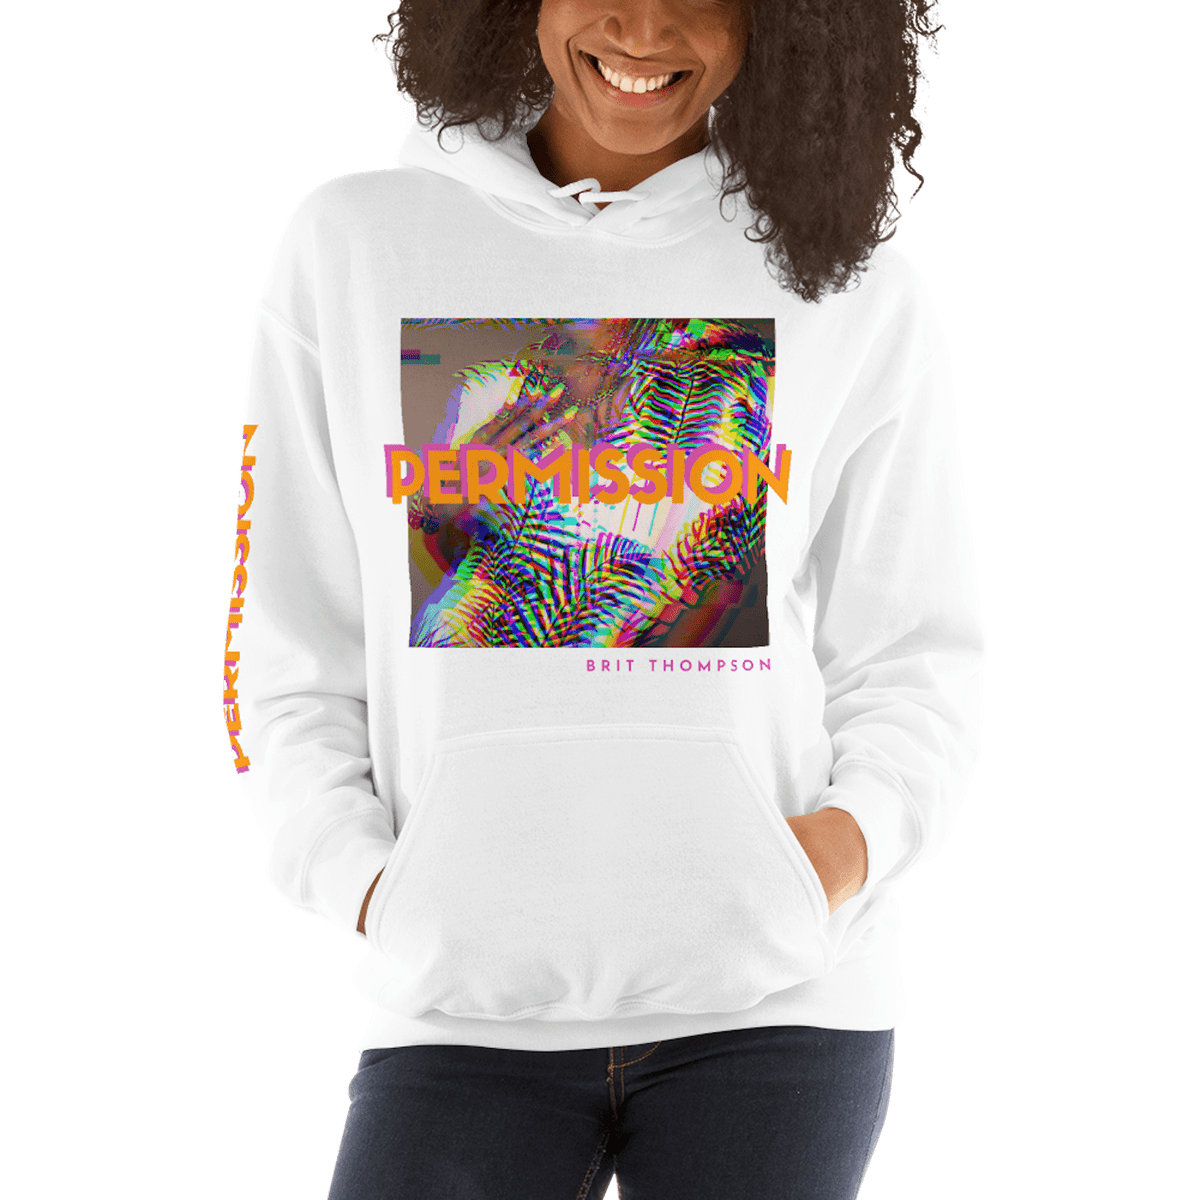 Curly hair natural girl in white Brit Thompson Permission hoodie band merch